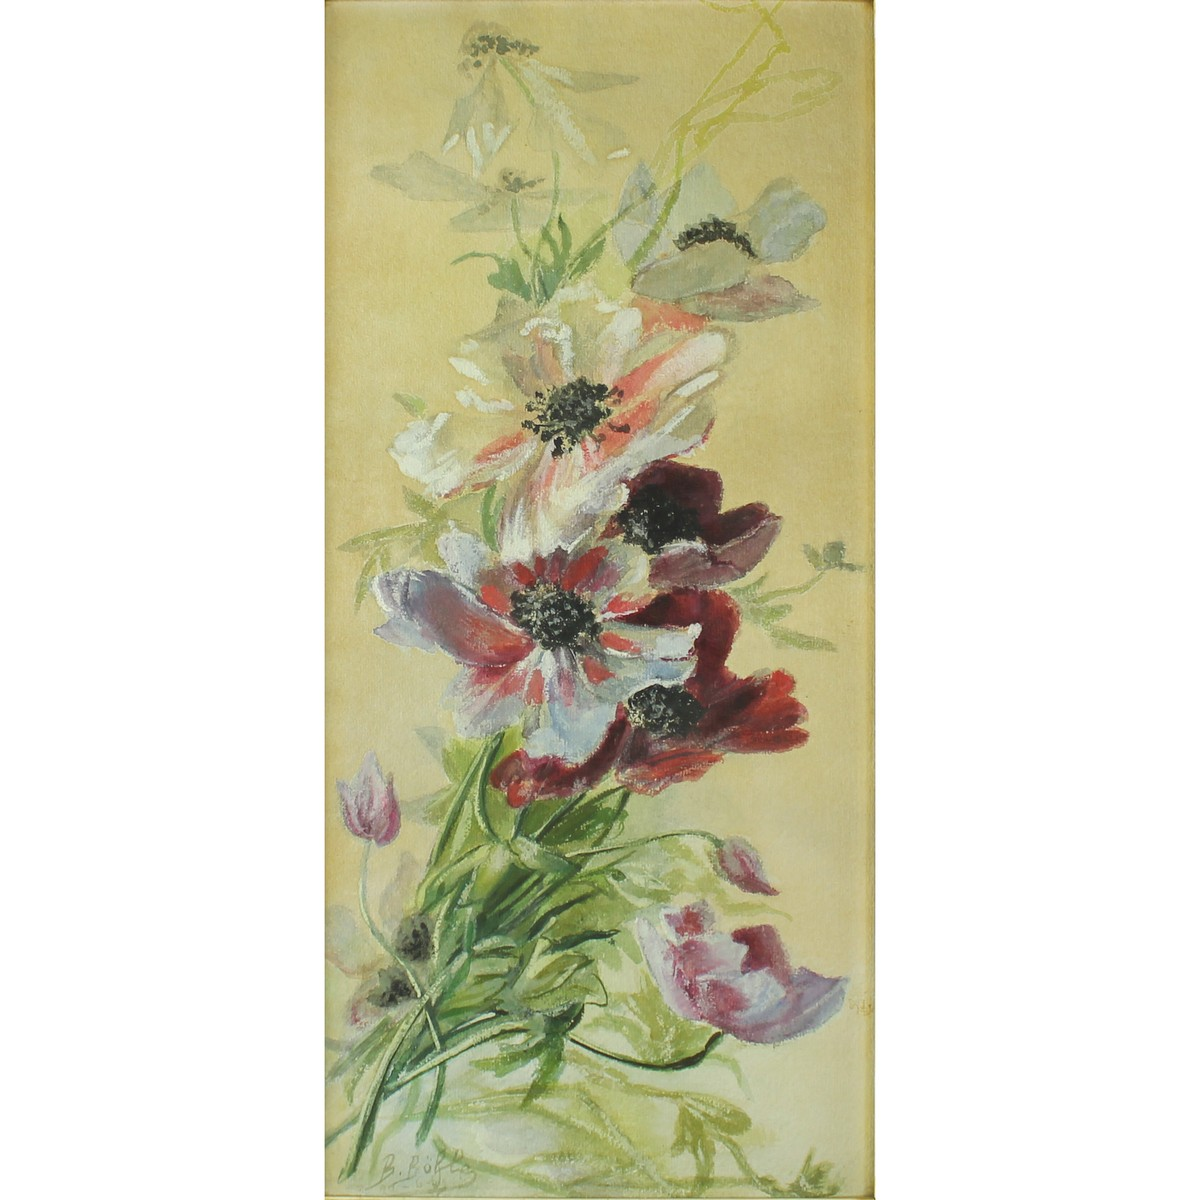 Lot 59 - Buhley,B? Nineteenth Century, Flowers